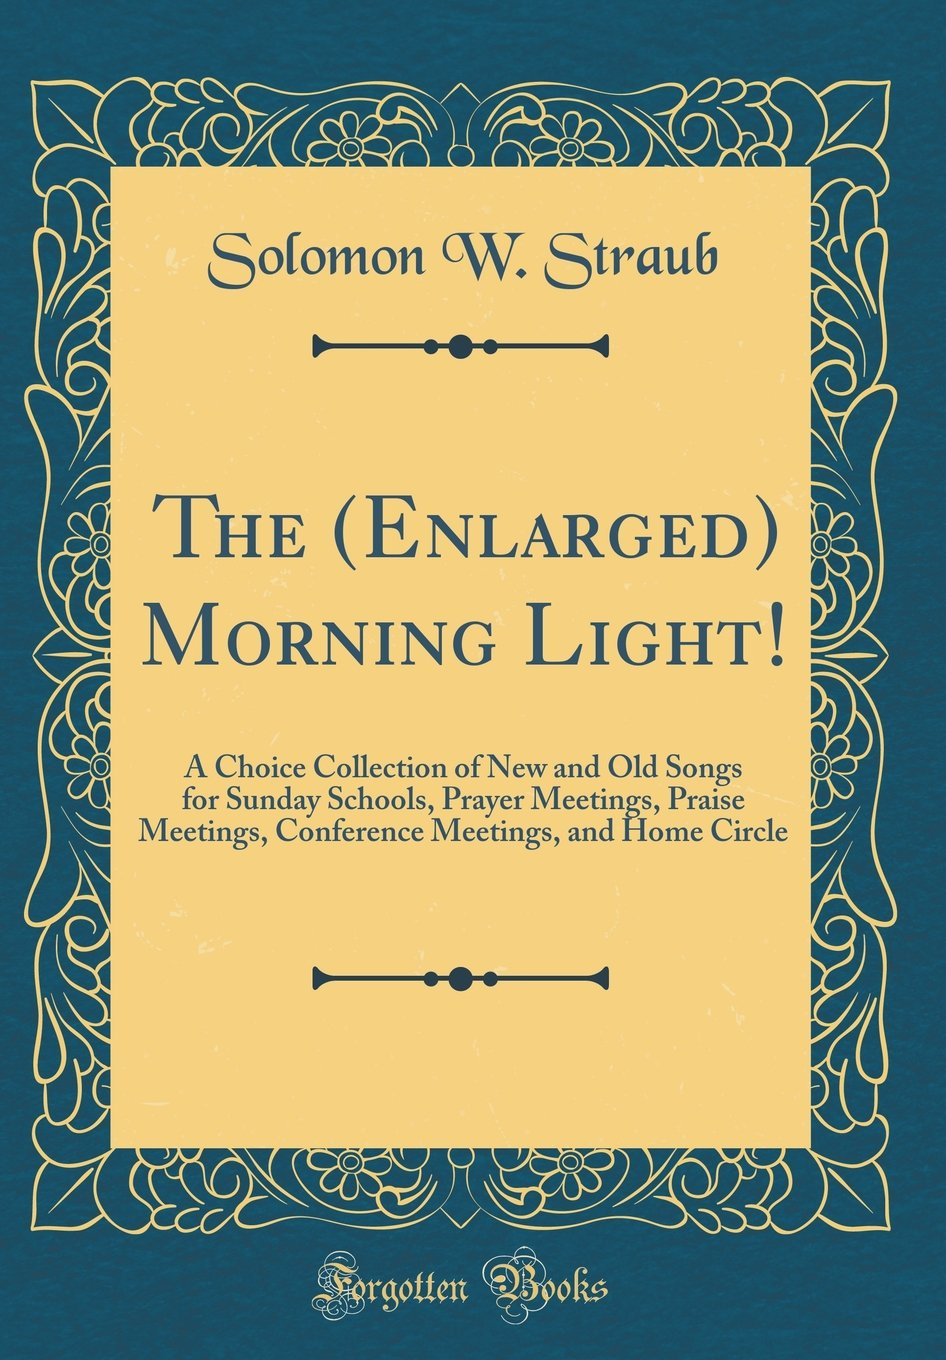 The (Enlarged) Morning Light!: A Choice Collection of New and Old Songs for Sunday Schools, Prayer Meetings, Praise Meetings, Conference Meetings, and Home Circle (Classic Reprint) ebook